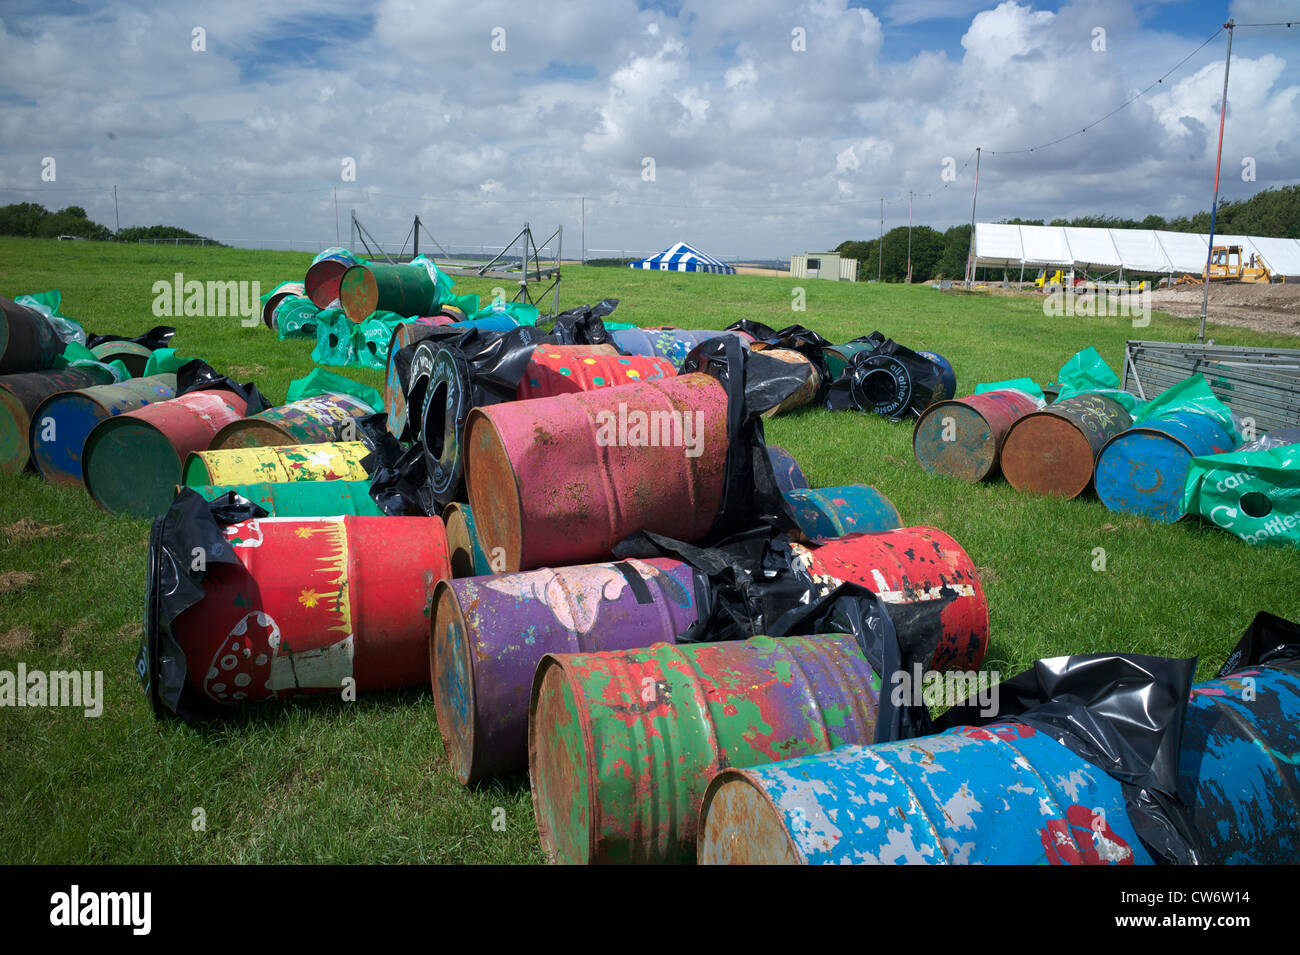 Rubbish bins in preparation for Boomtown rock Festival  UK - Stock Image